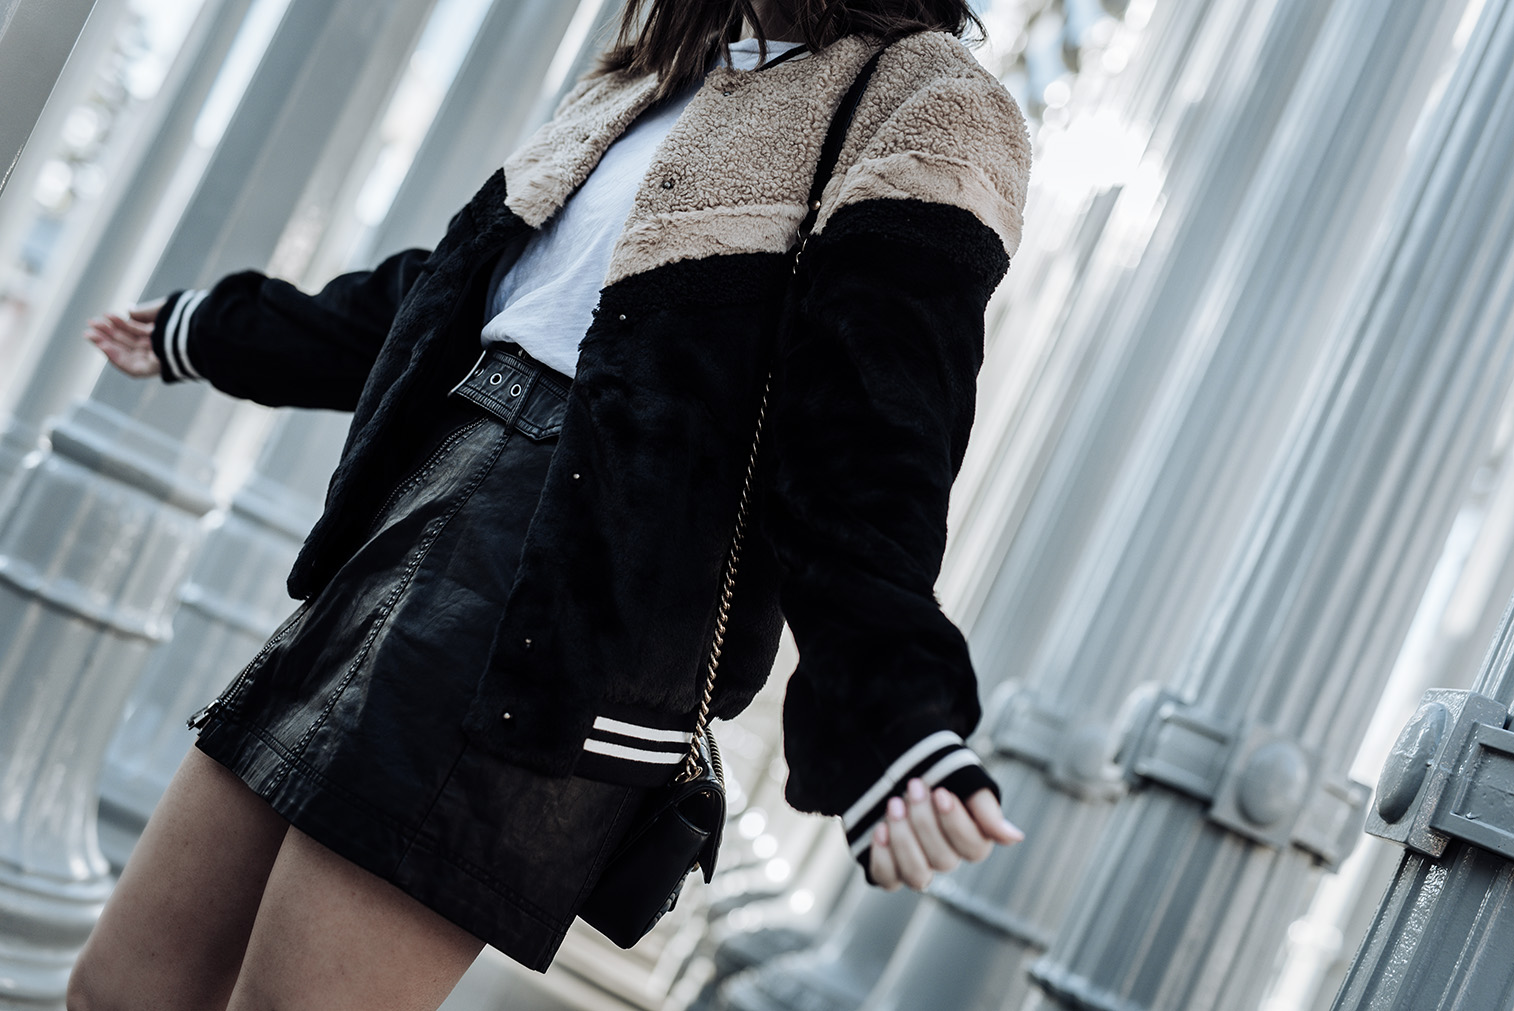 Faux fur bomber (Lord & Taylor)   Free People Feeing Fresh vegan leather skirt   Golden Goose Superstar Sneakers  Gucci Bag   Faux fur bomber   skirt  